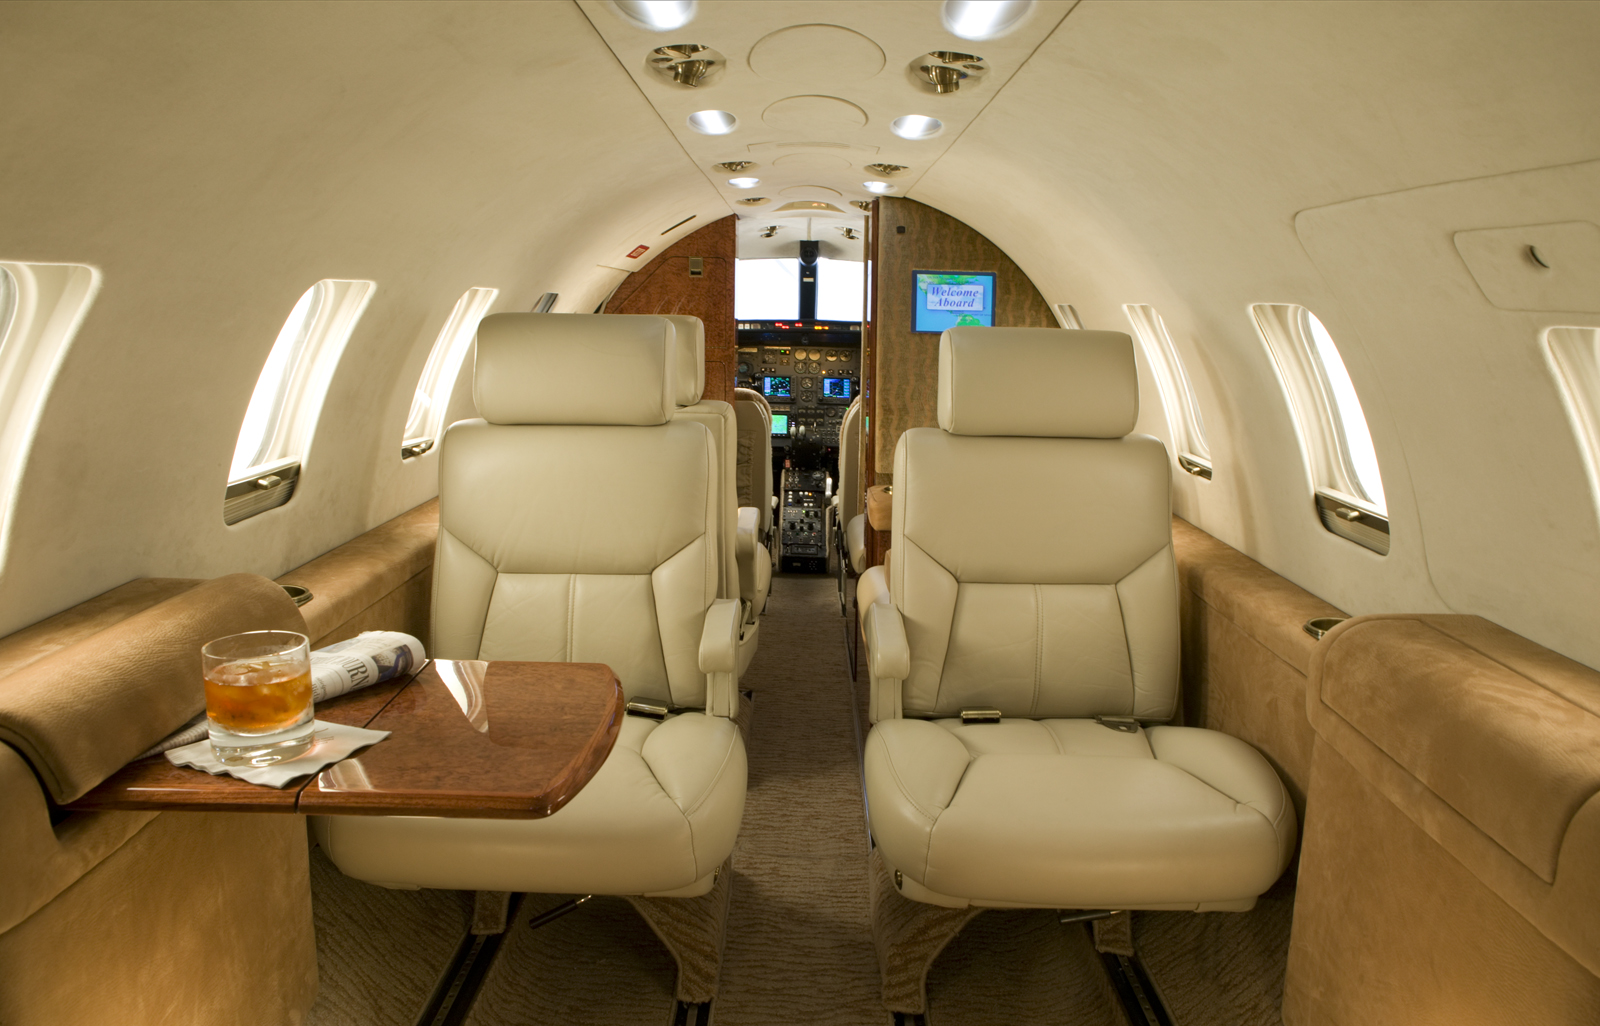 Best jets ltd breathes new life into learjets airport for Aircraft interior designs